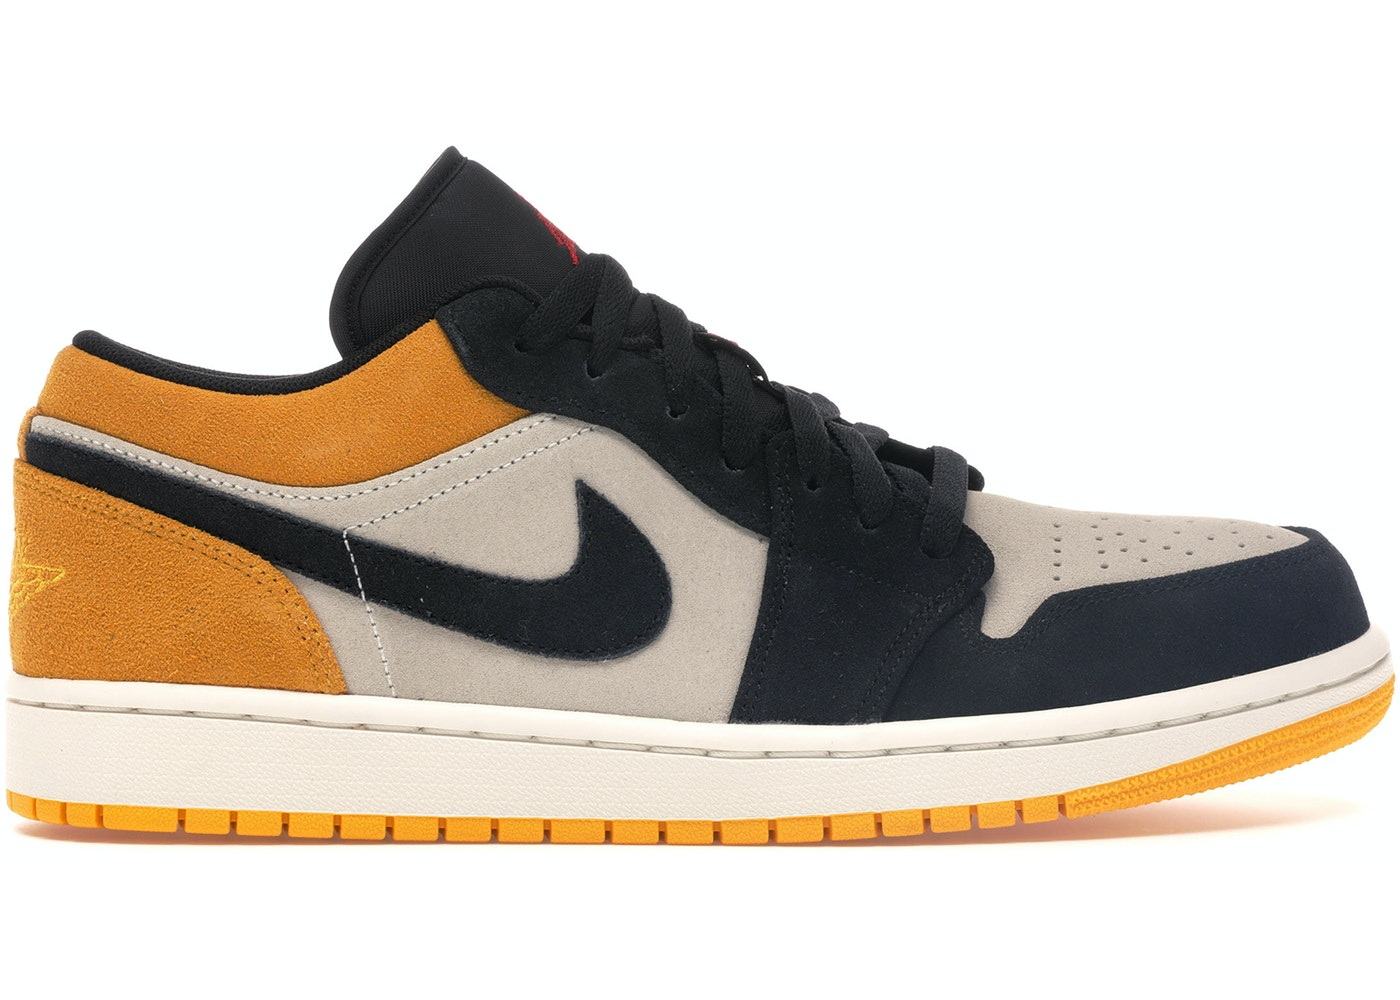 info for c9663 9deba Jordan 1 Low Sail University Gold Black - 553558-127